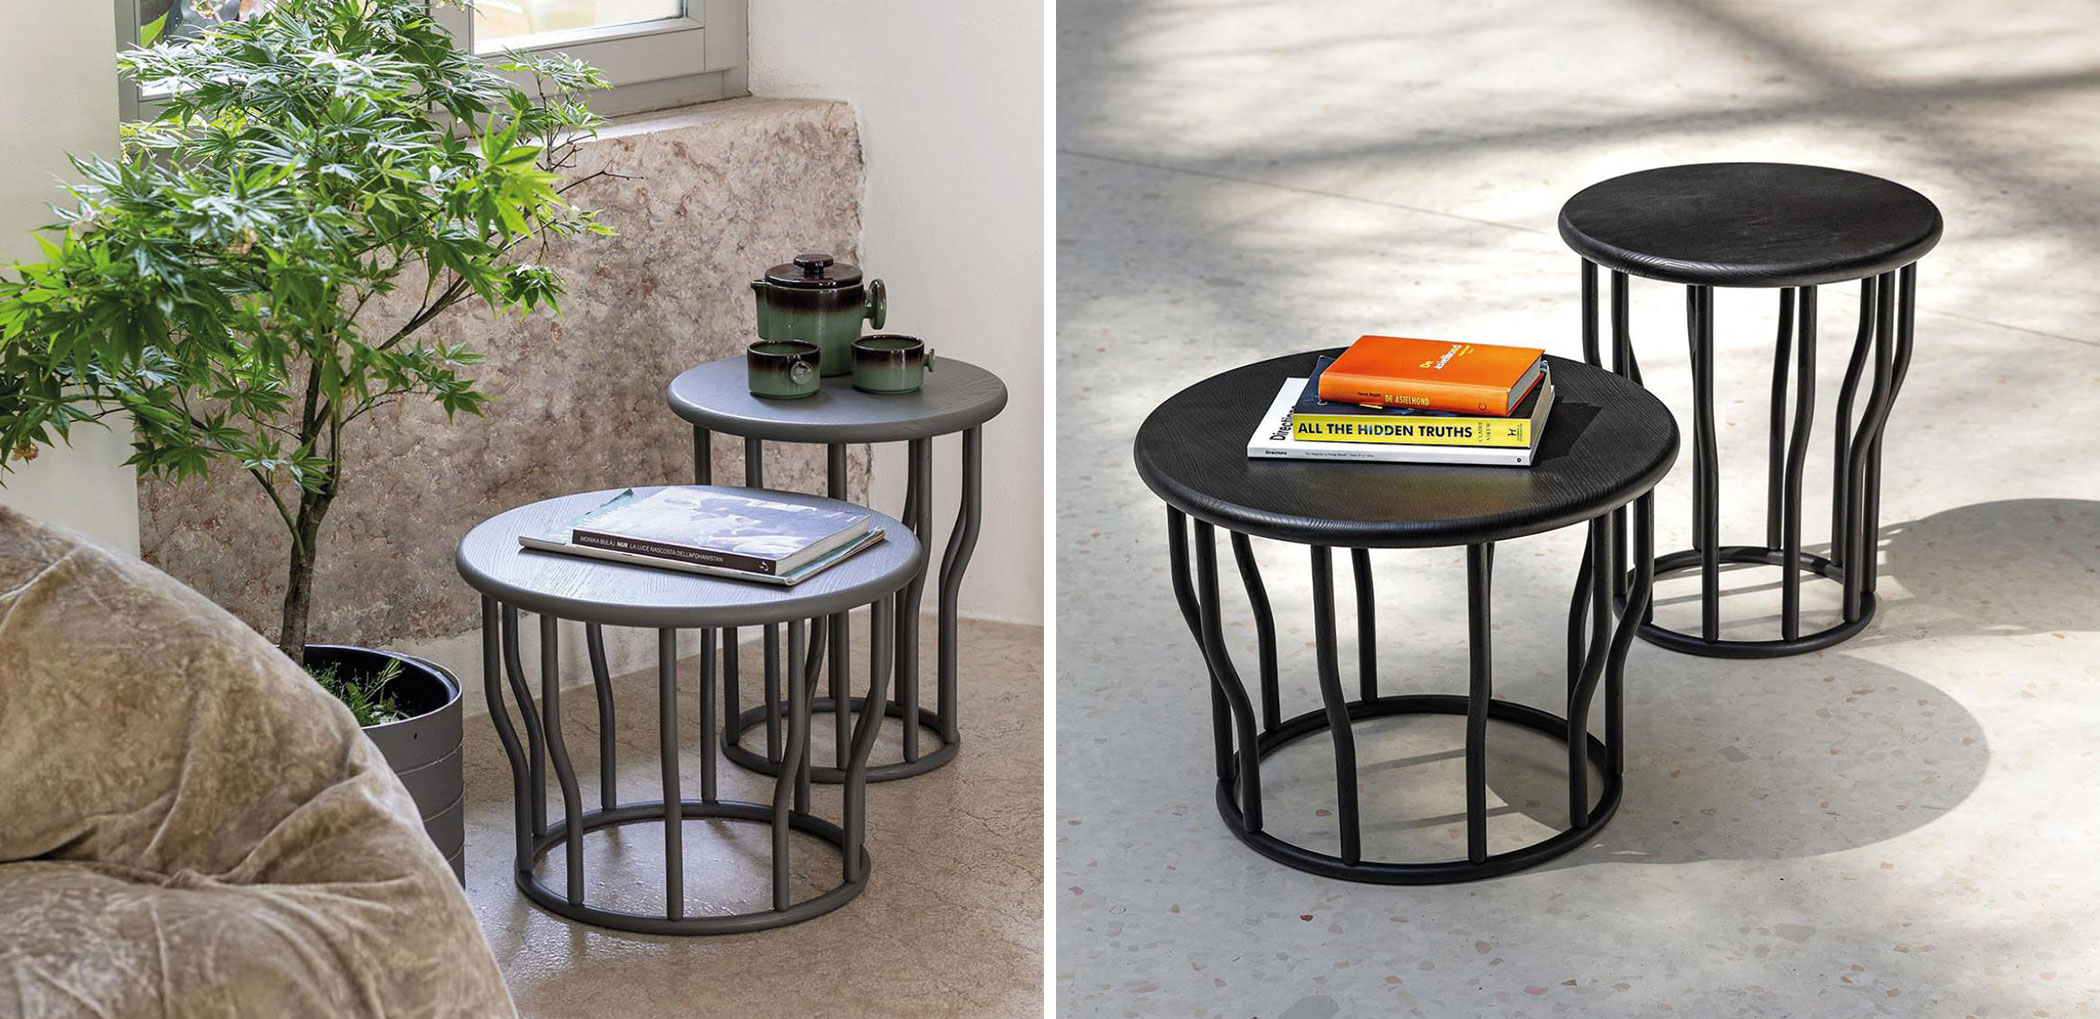 Lewis_Table_Installs